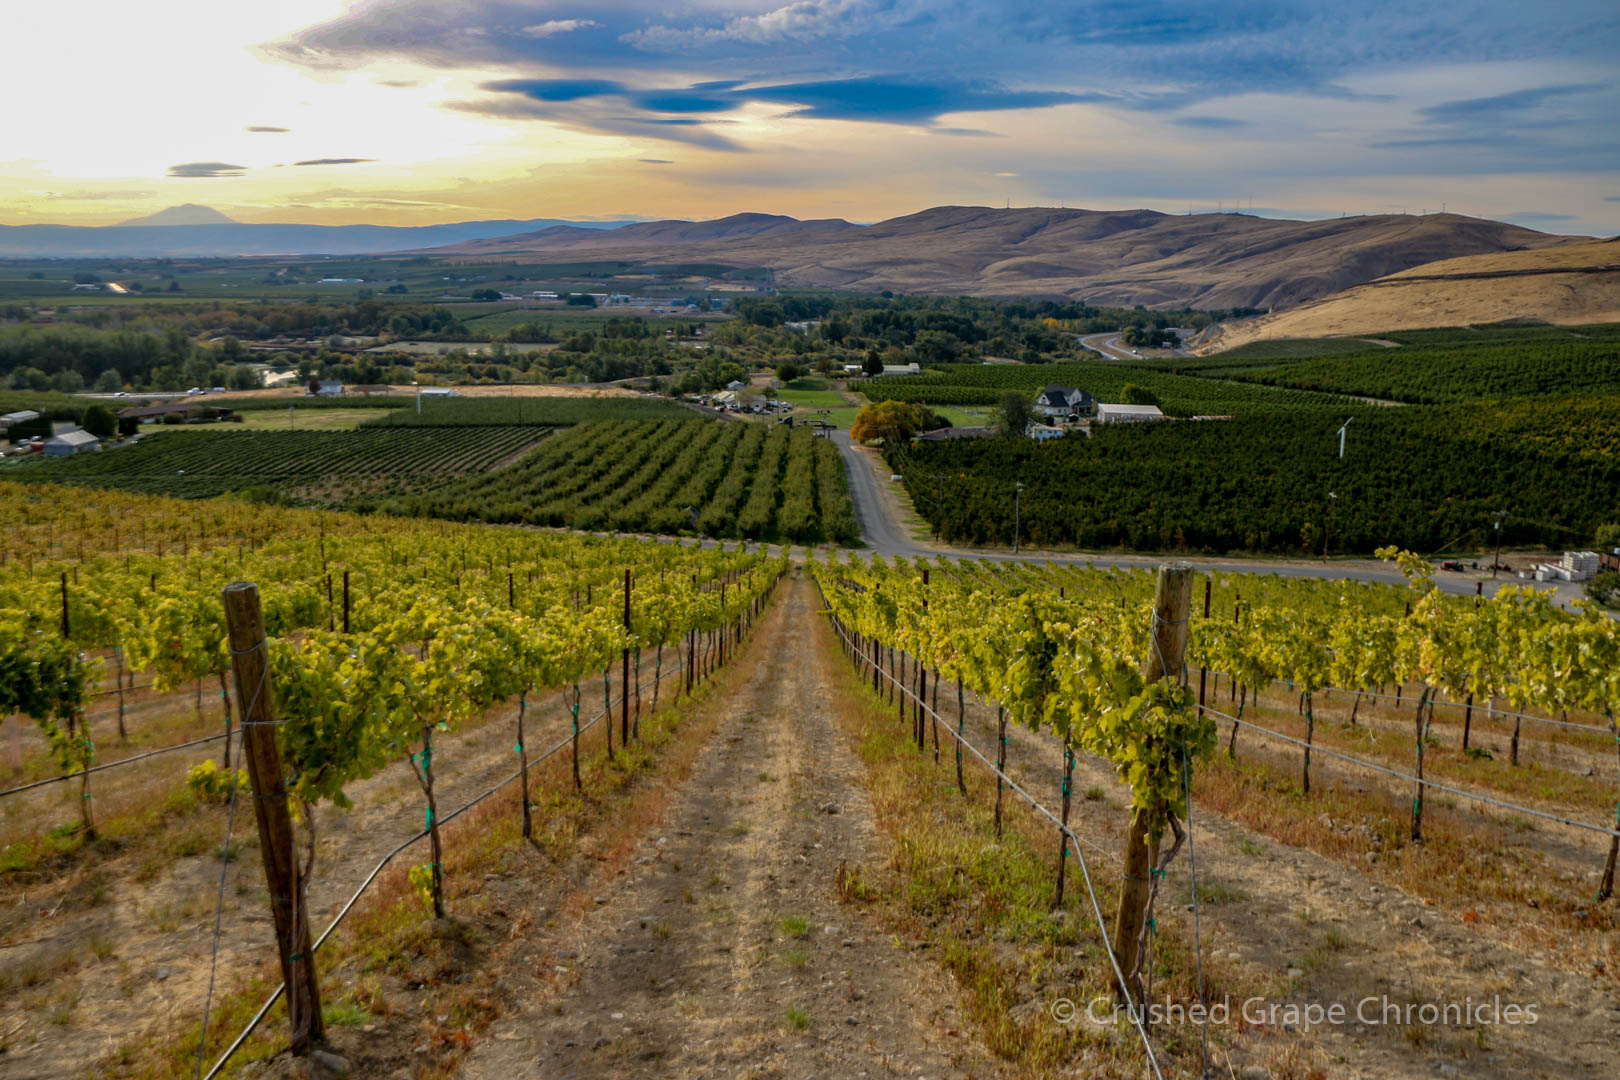 Owen Roe Winery, in Yakima Valley Washington